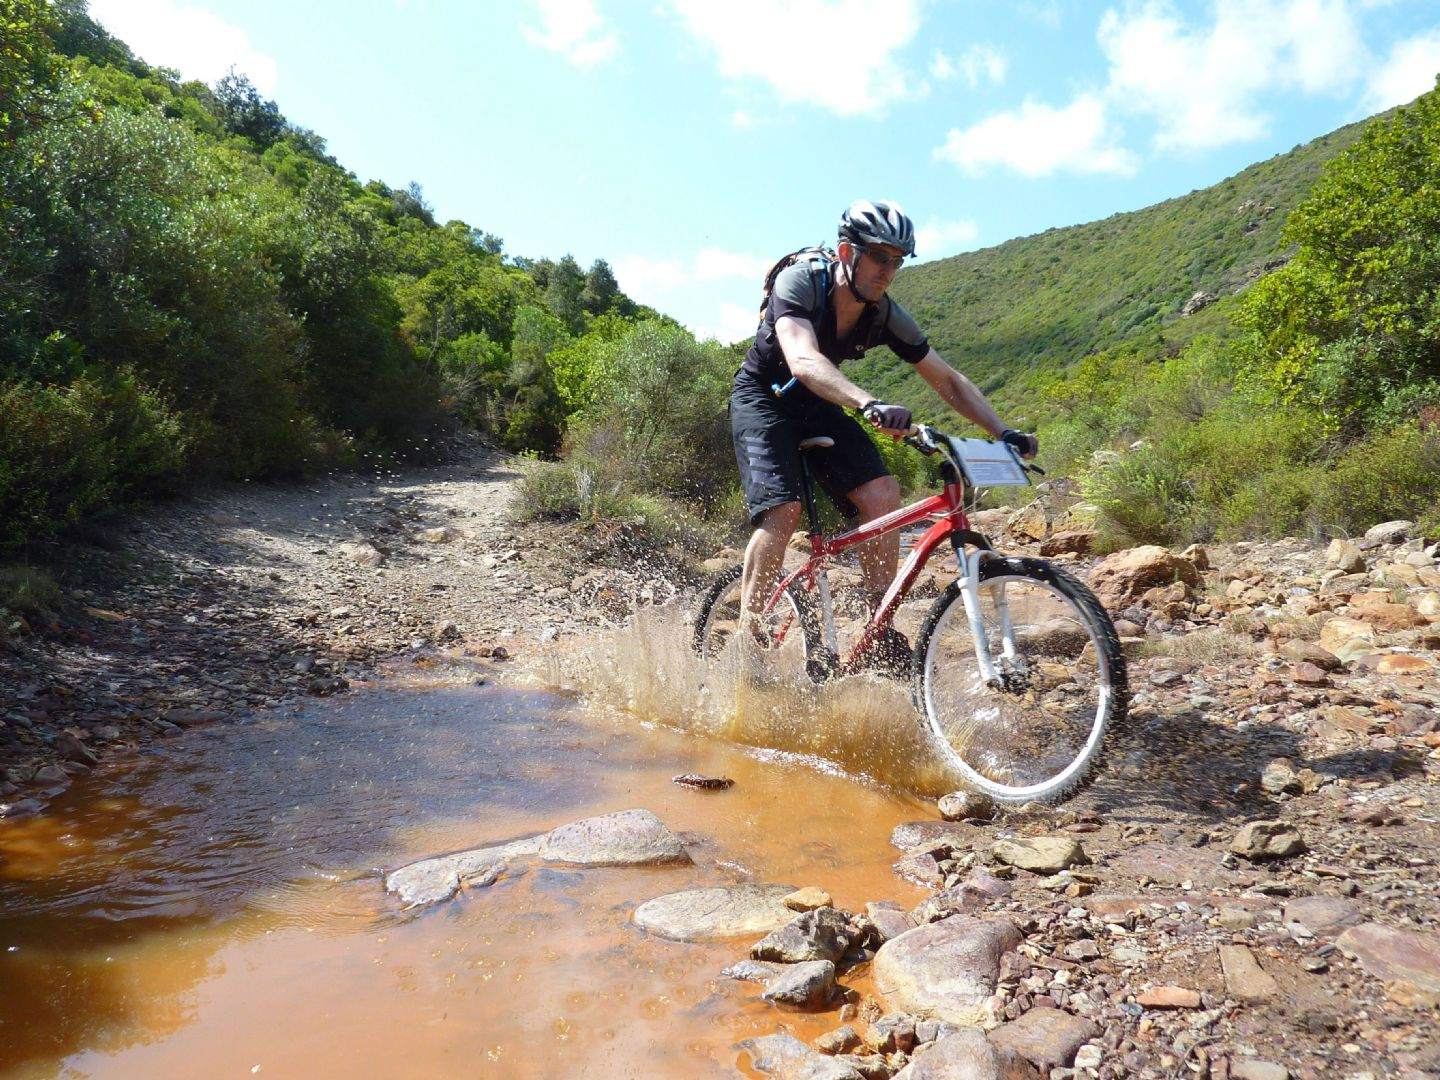 2011 Sardinia 073.jpg - Sardinia - Coast to Coast - Italia Mountain Biking